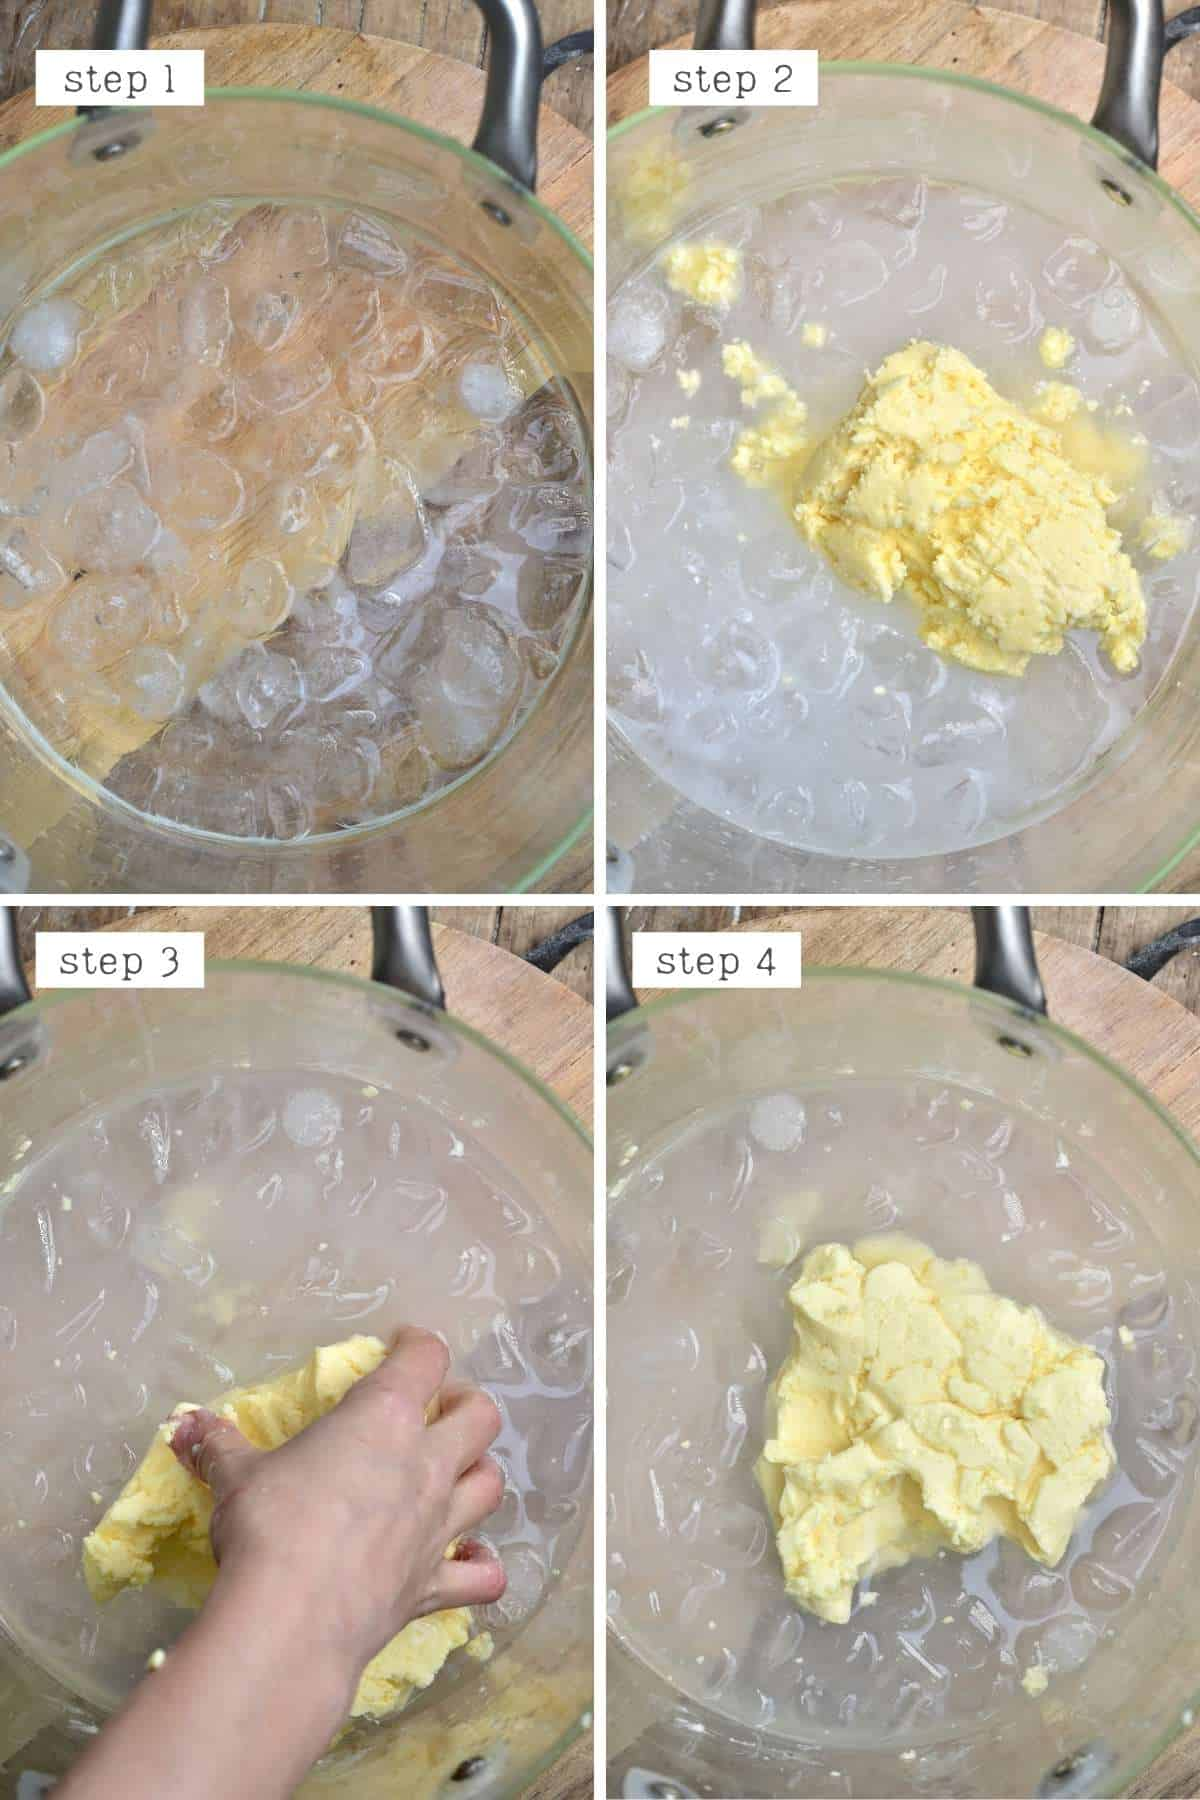 Steps for removing buttermilk from homemade butter